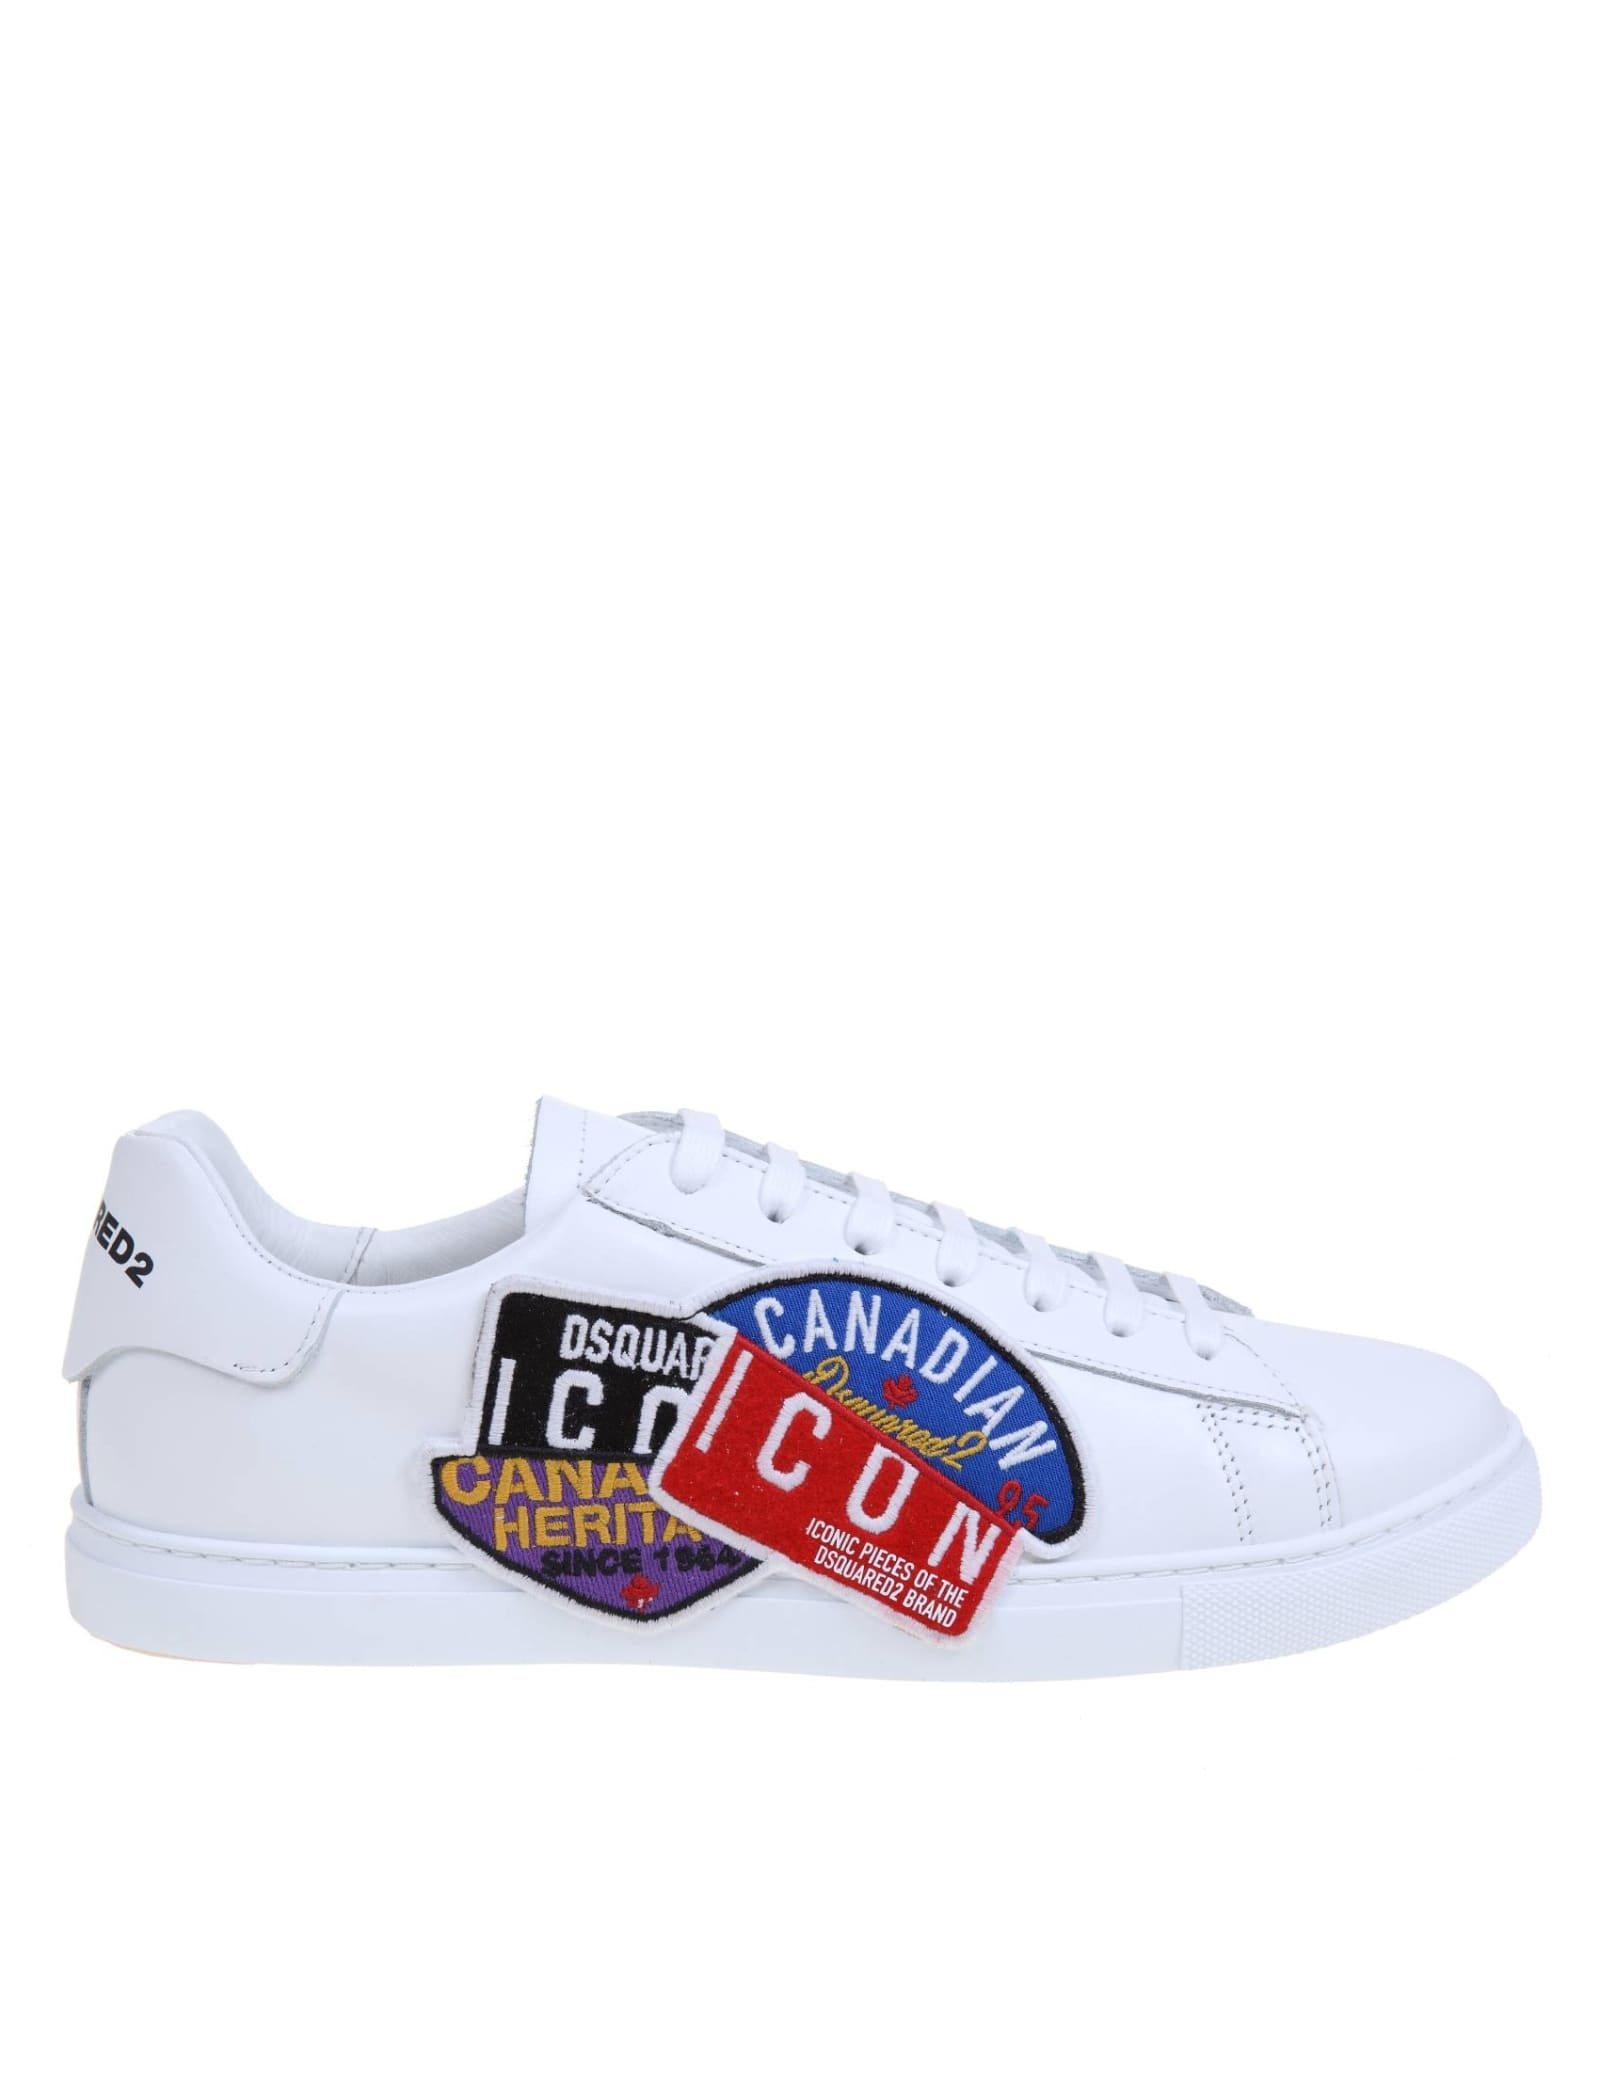 Dsquared2 DSQUARED NEW TENNIS SNEAKERS IN LEATHER WITH ICON PATCH